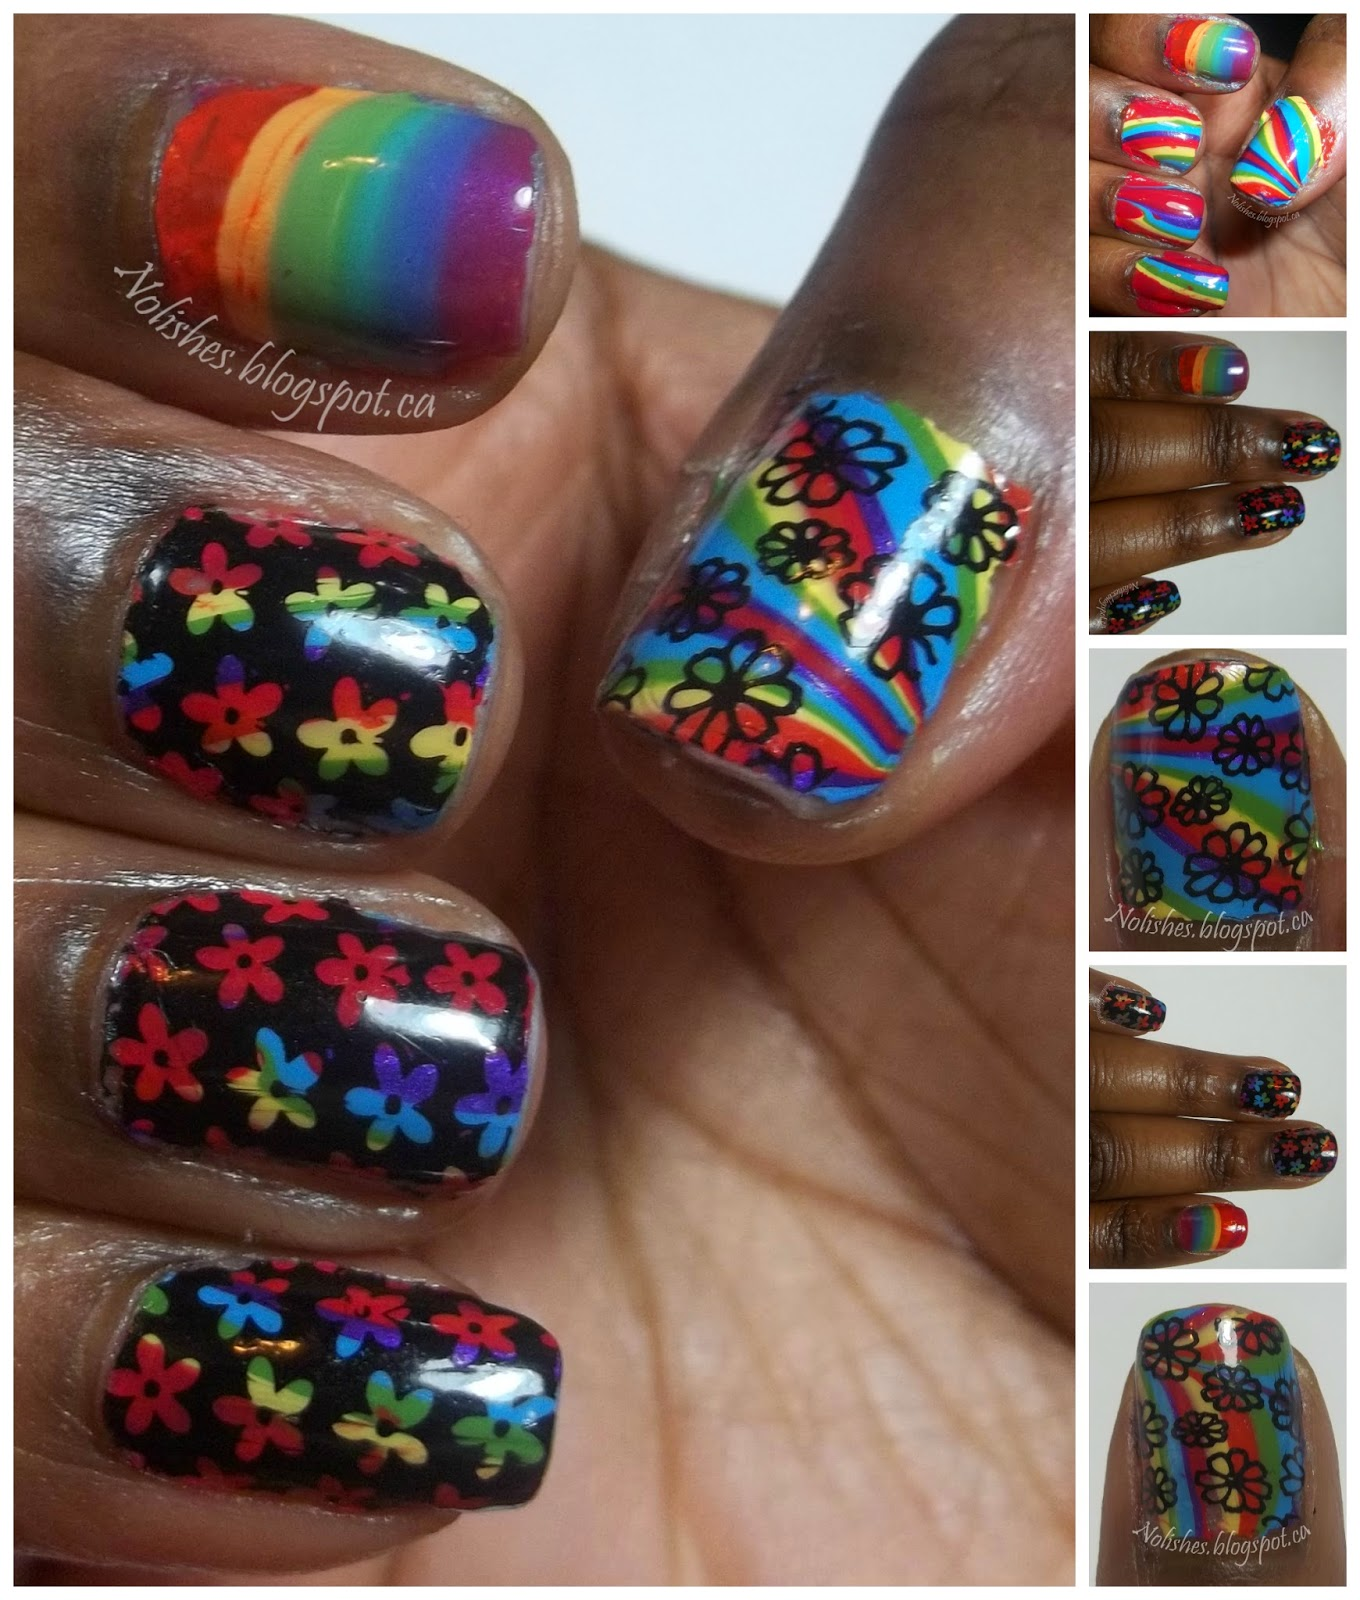 collage of additional photos of the manicure